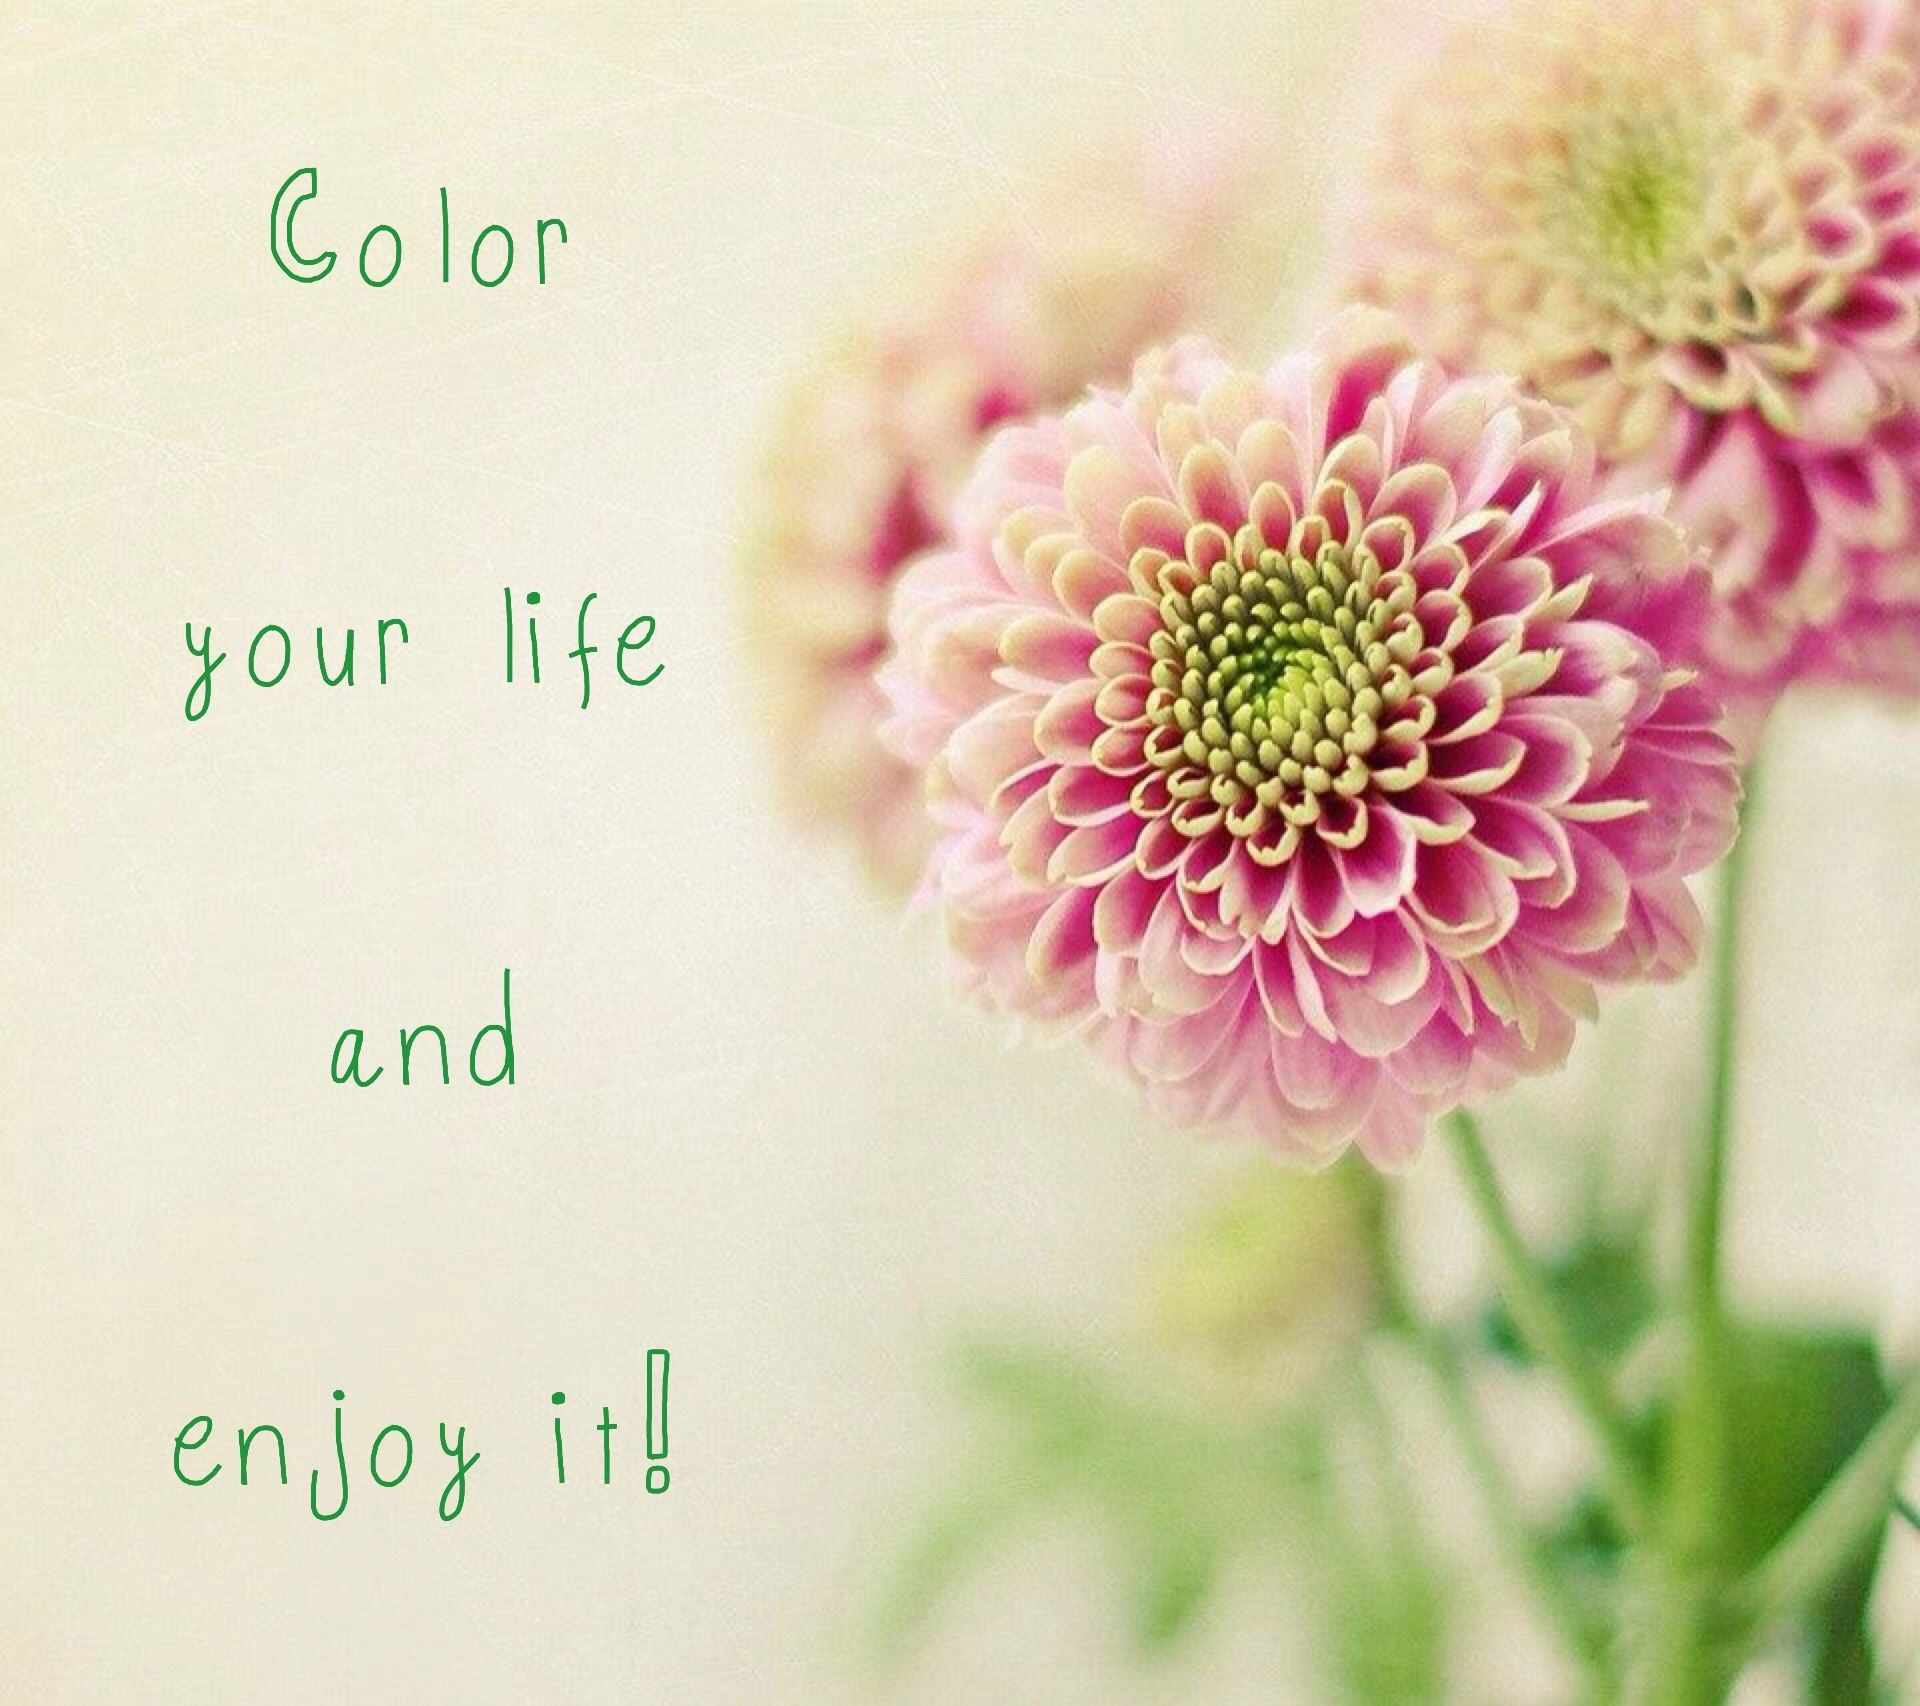 Color Your Life Quotes Color Your Life And Enjoy It  Quotes  Pinterest  Colors Life